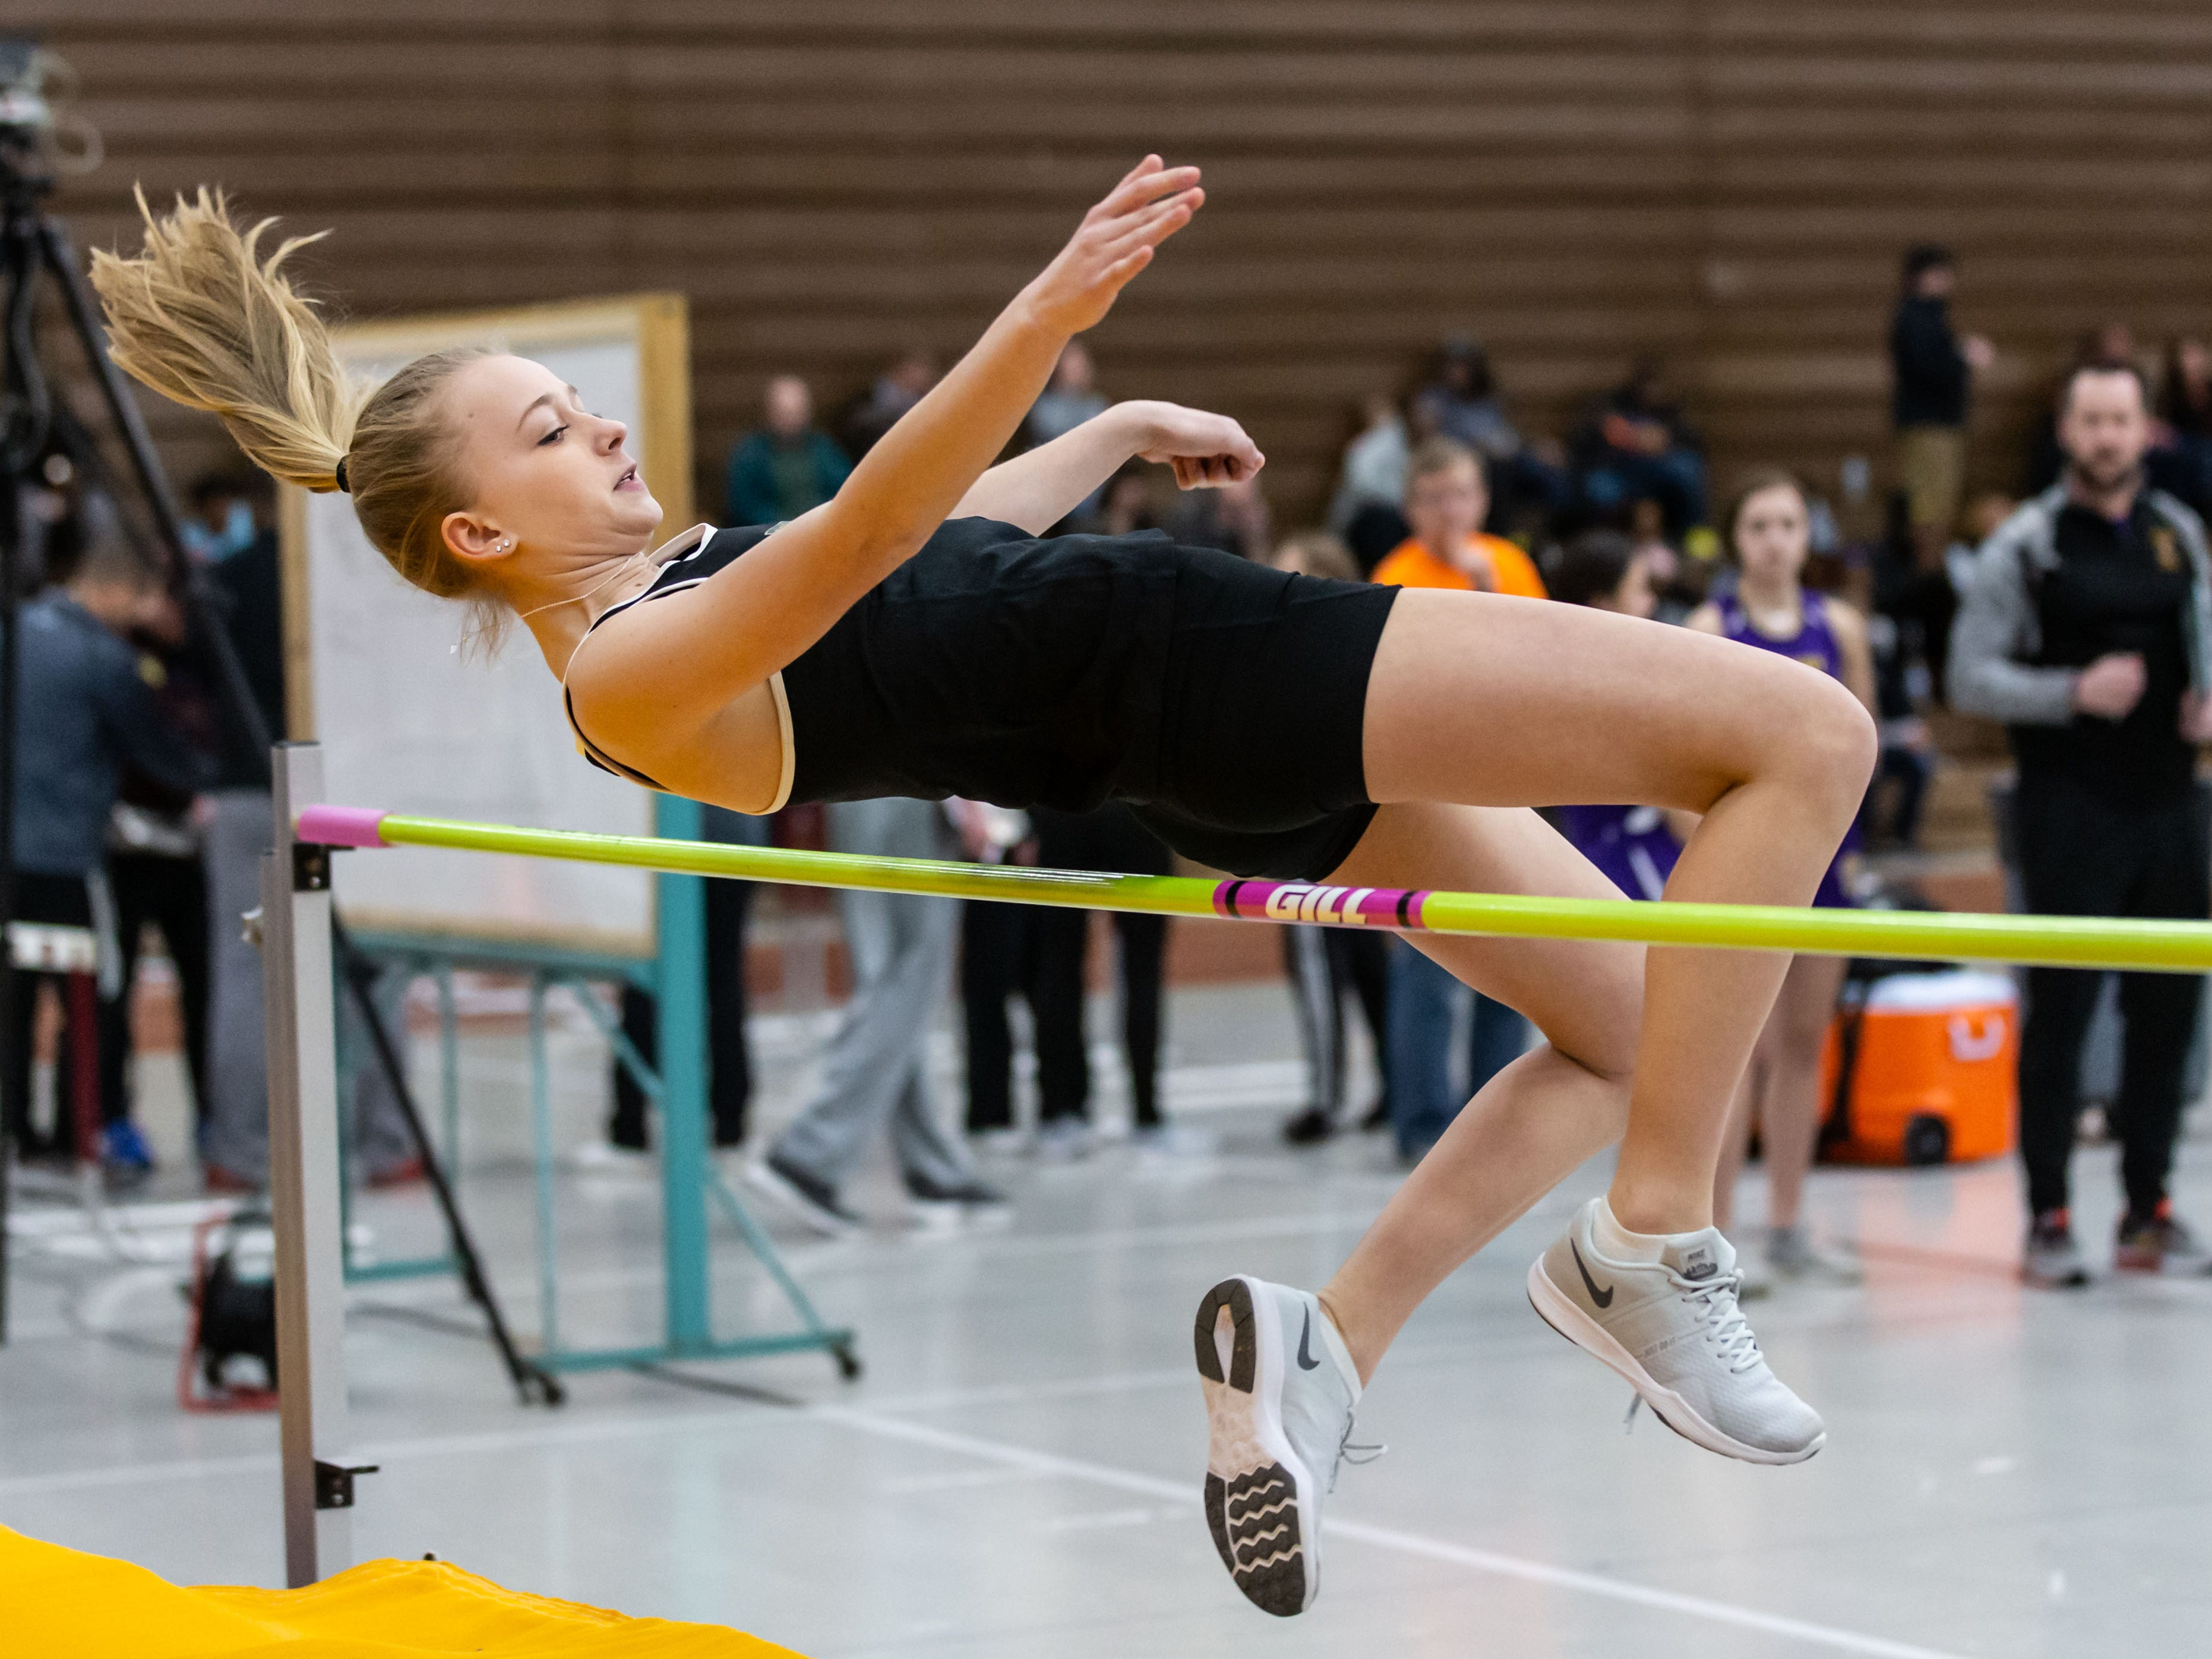 Greenfield's Megan Slatty competes on the high jump at the Reinhard Bulldog Relays hosted by West Allis Central on Friday, March 15, 2019.